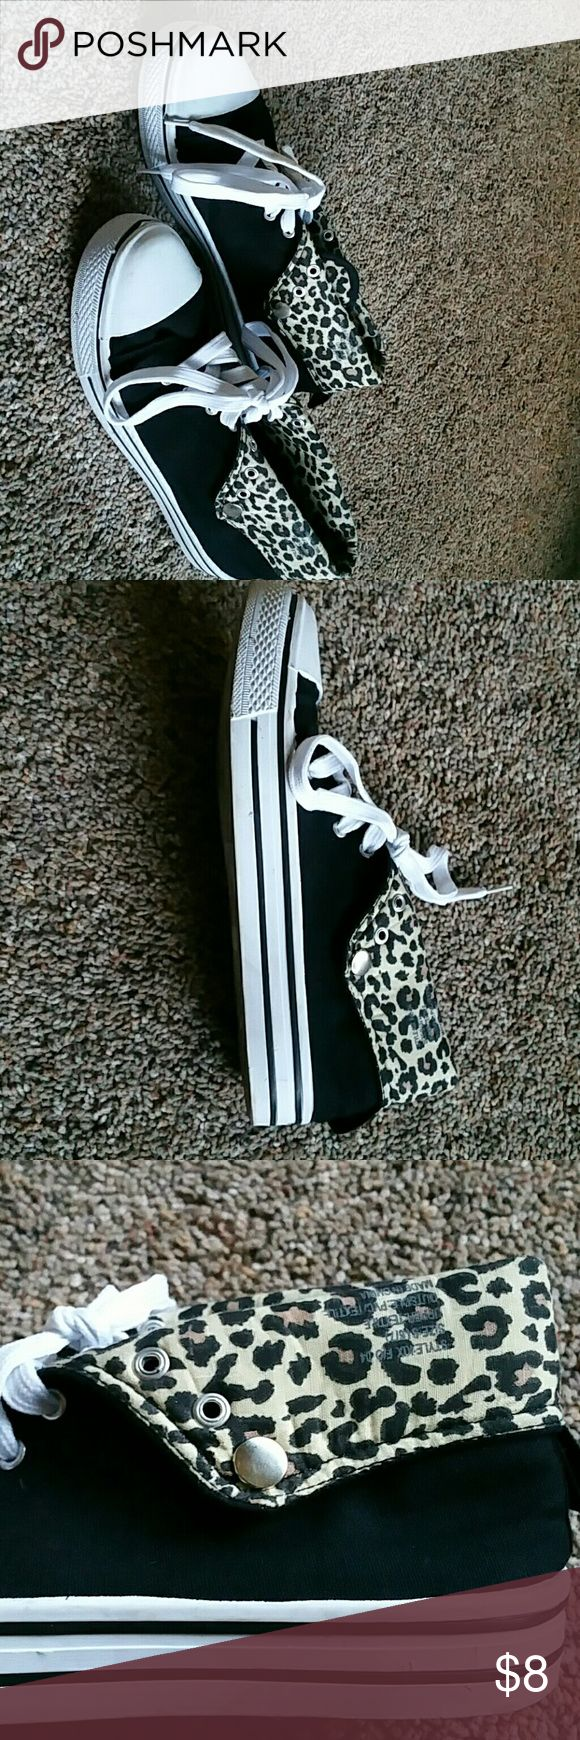 "Shoes Leopard print fold down ""knock off"" converse style shoe. Rue 21 Shoes Sneakers"